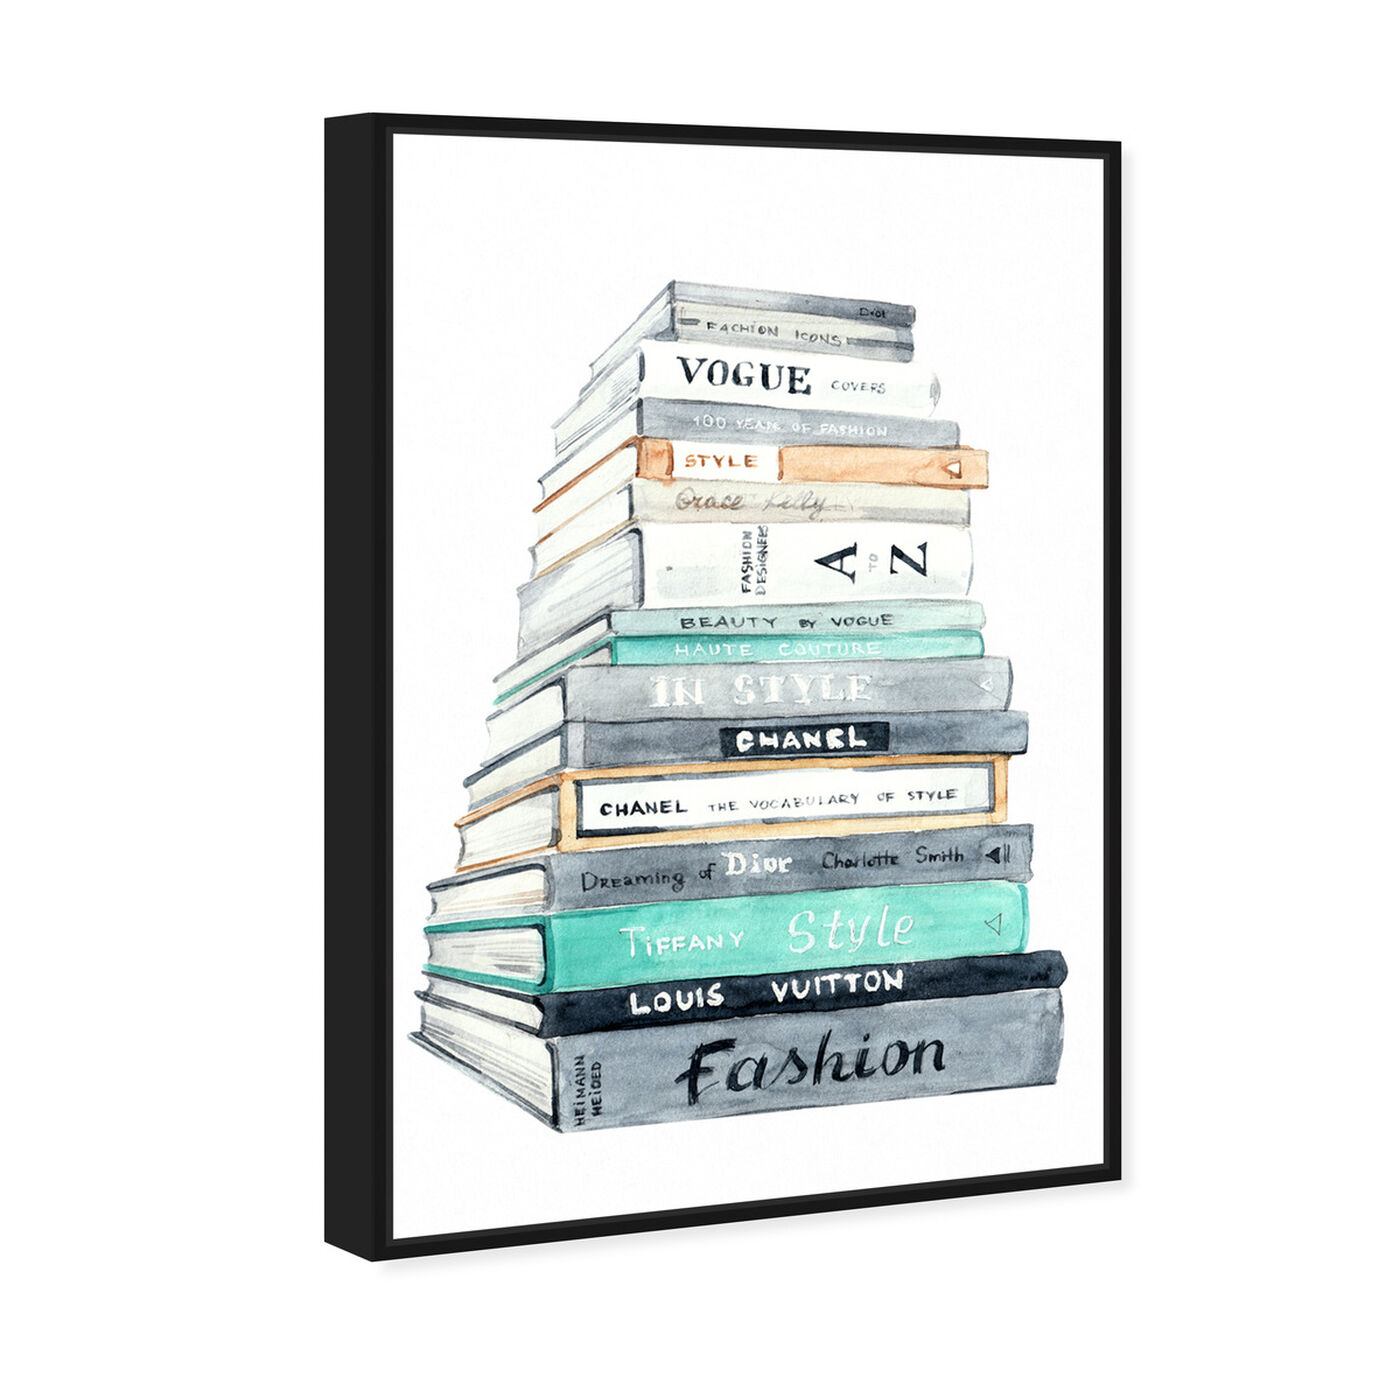 Angled view of Fashion Book Perspective featuring fashion and glam and books art.